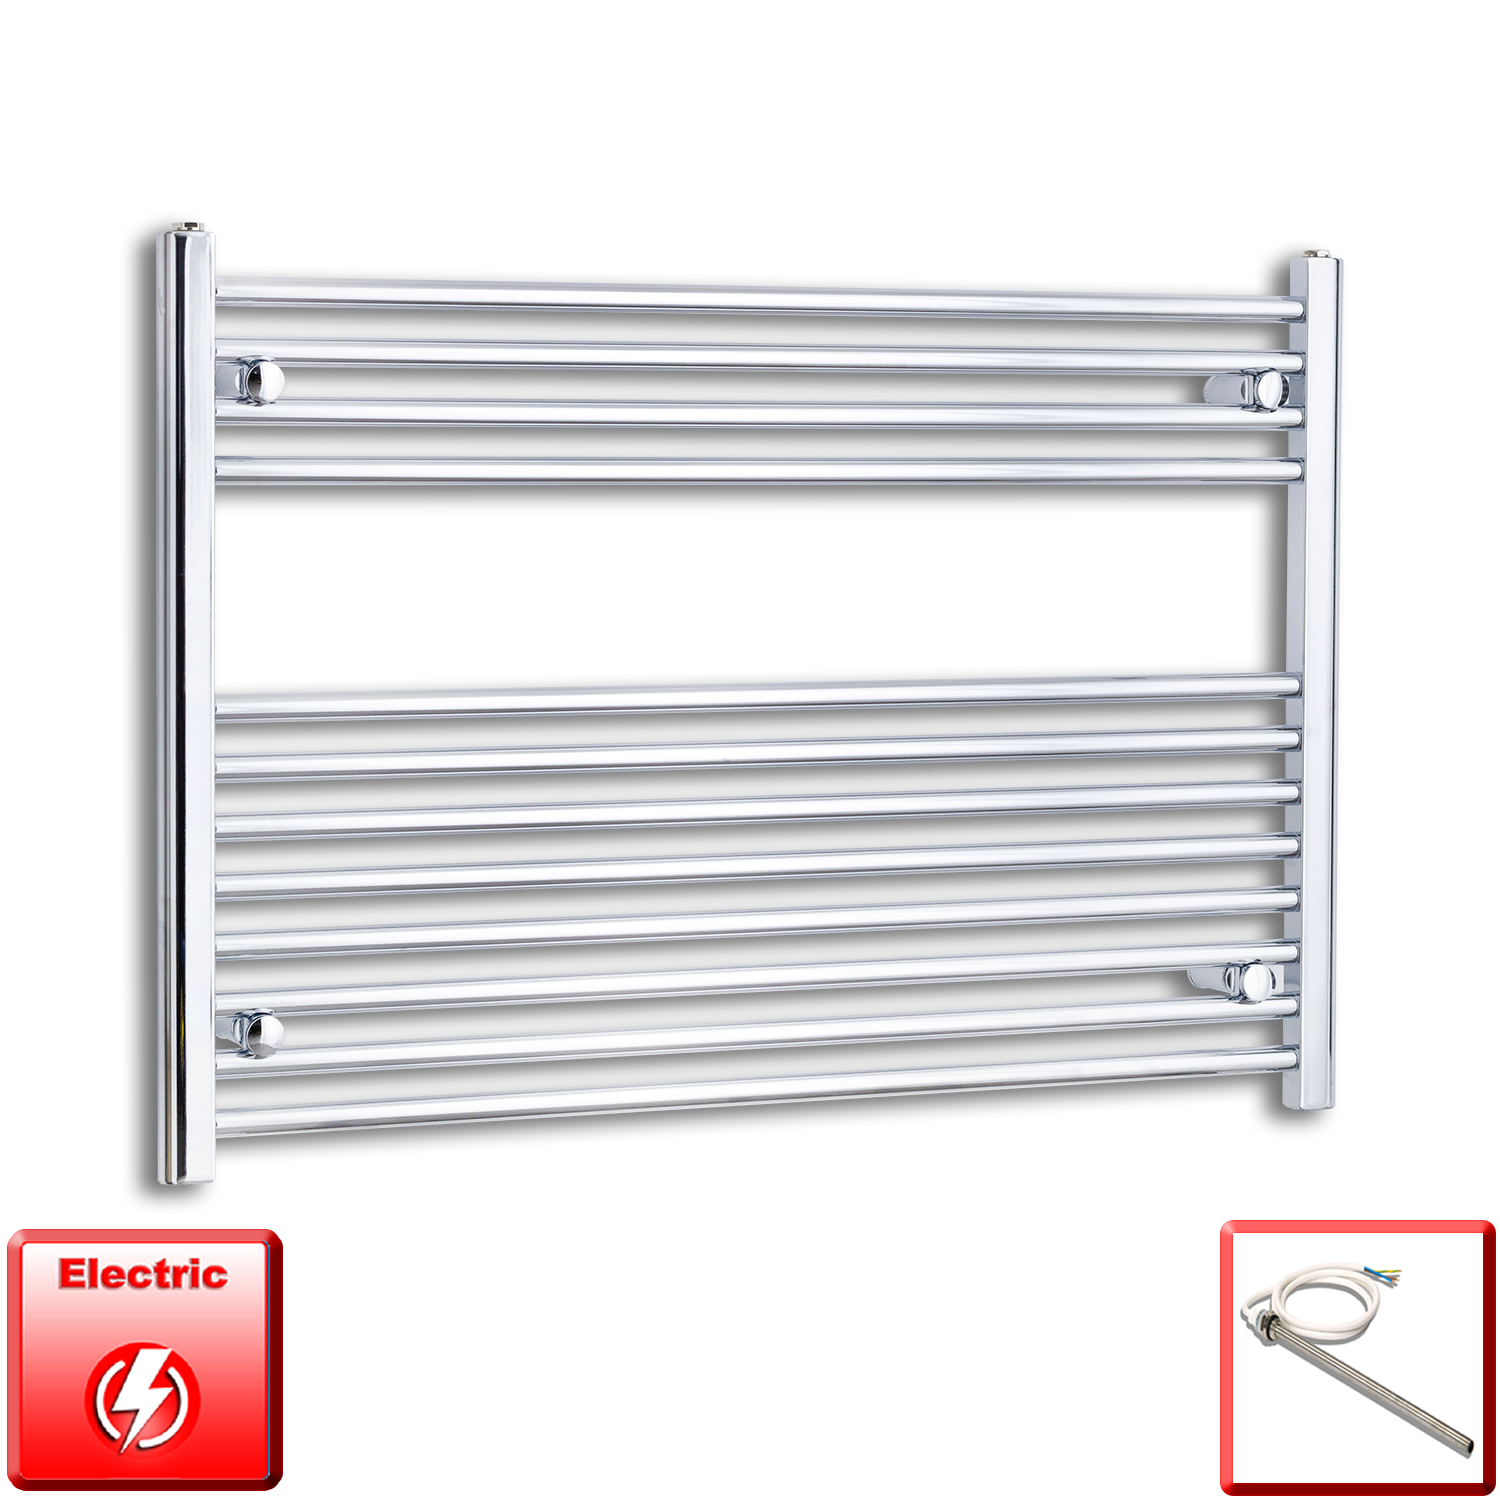 1000mm Wide 700mm High Flat Chrome Pre-Filled Electric Heated Towel Rail Radiator HTR,Single Heat Element